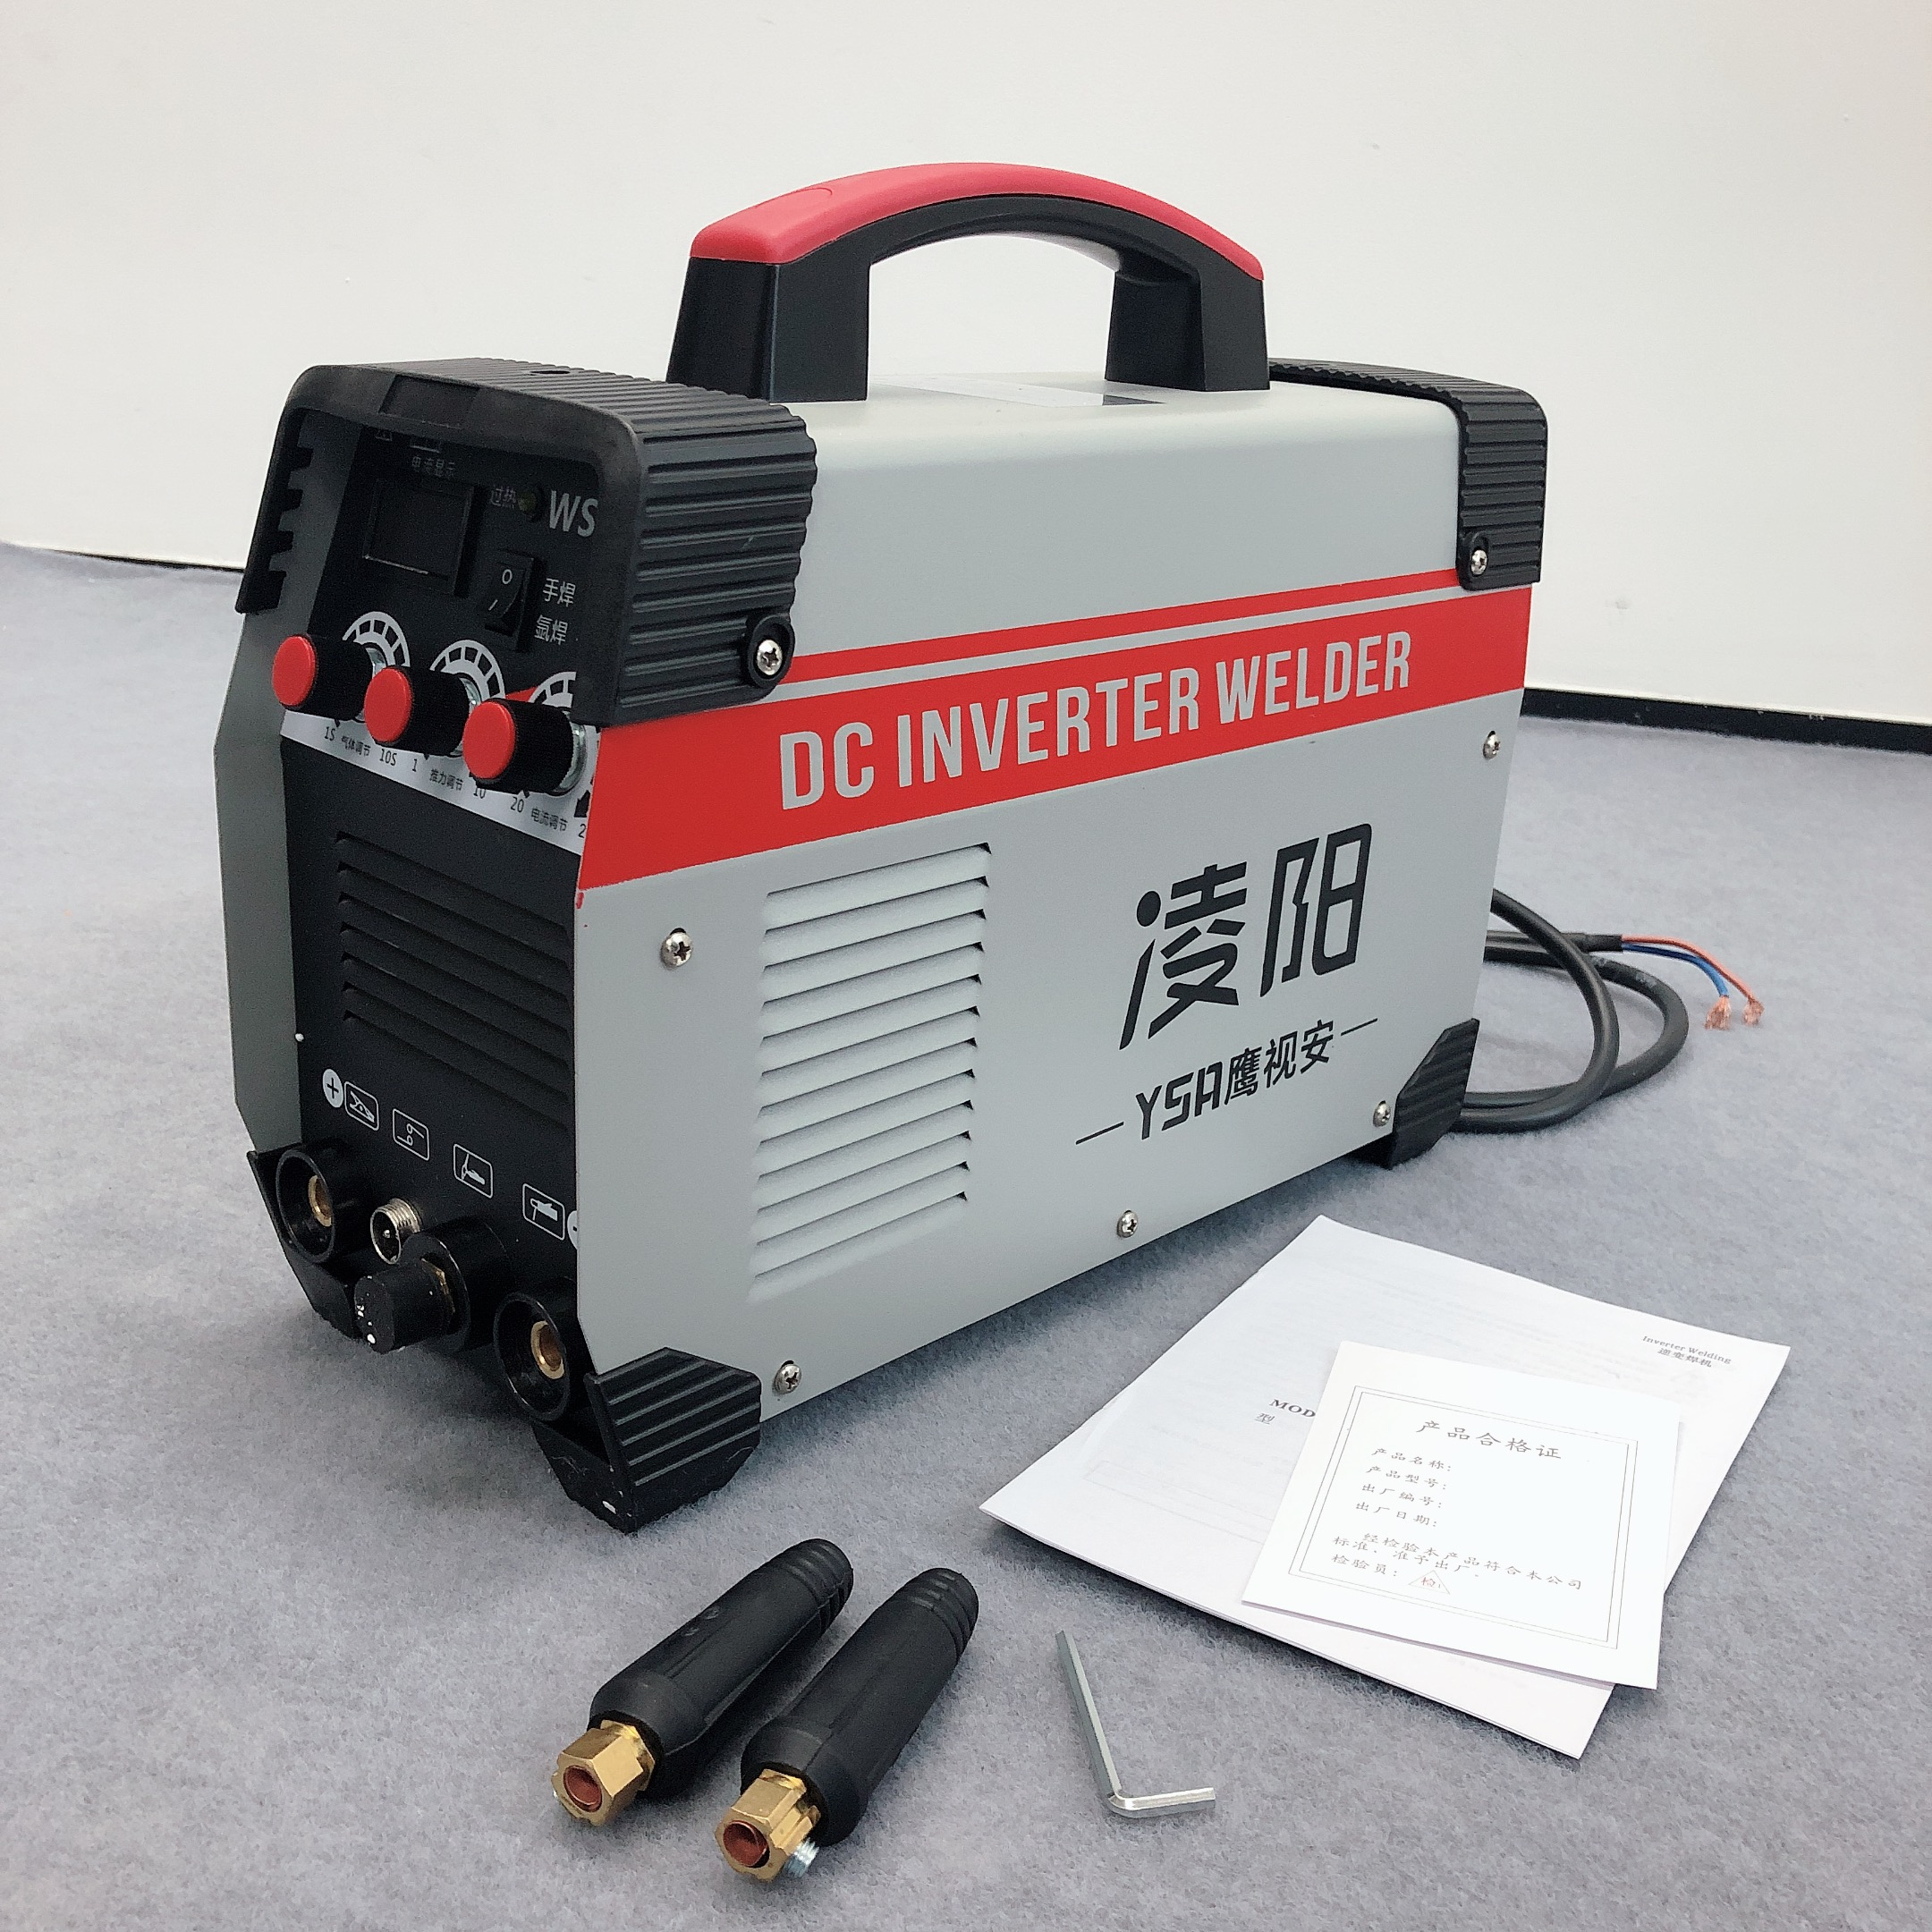 2In1 ARC / TIG IGBT Inverter Arc Welding Machine 220V 250A MMA Welding Machine Welding Power Tools